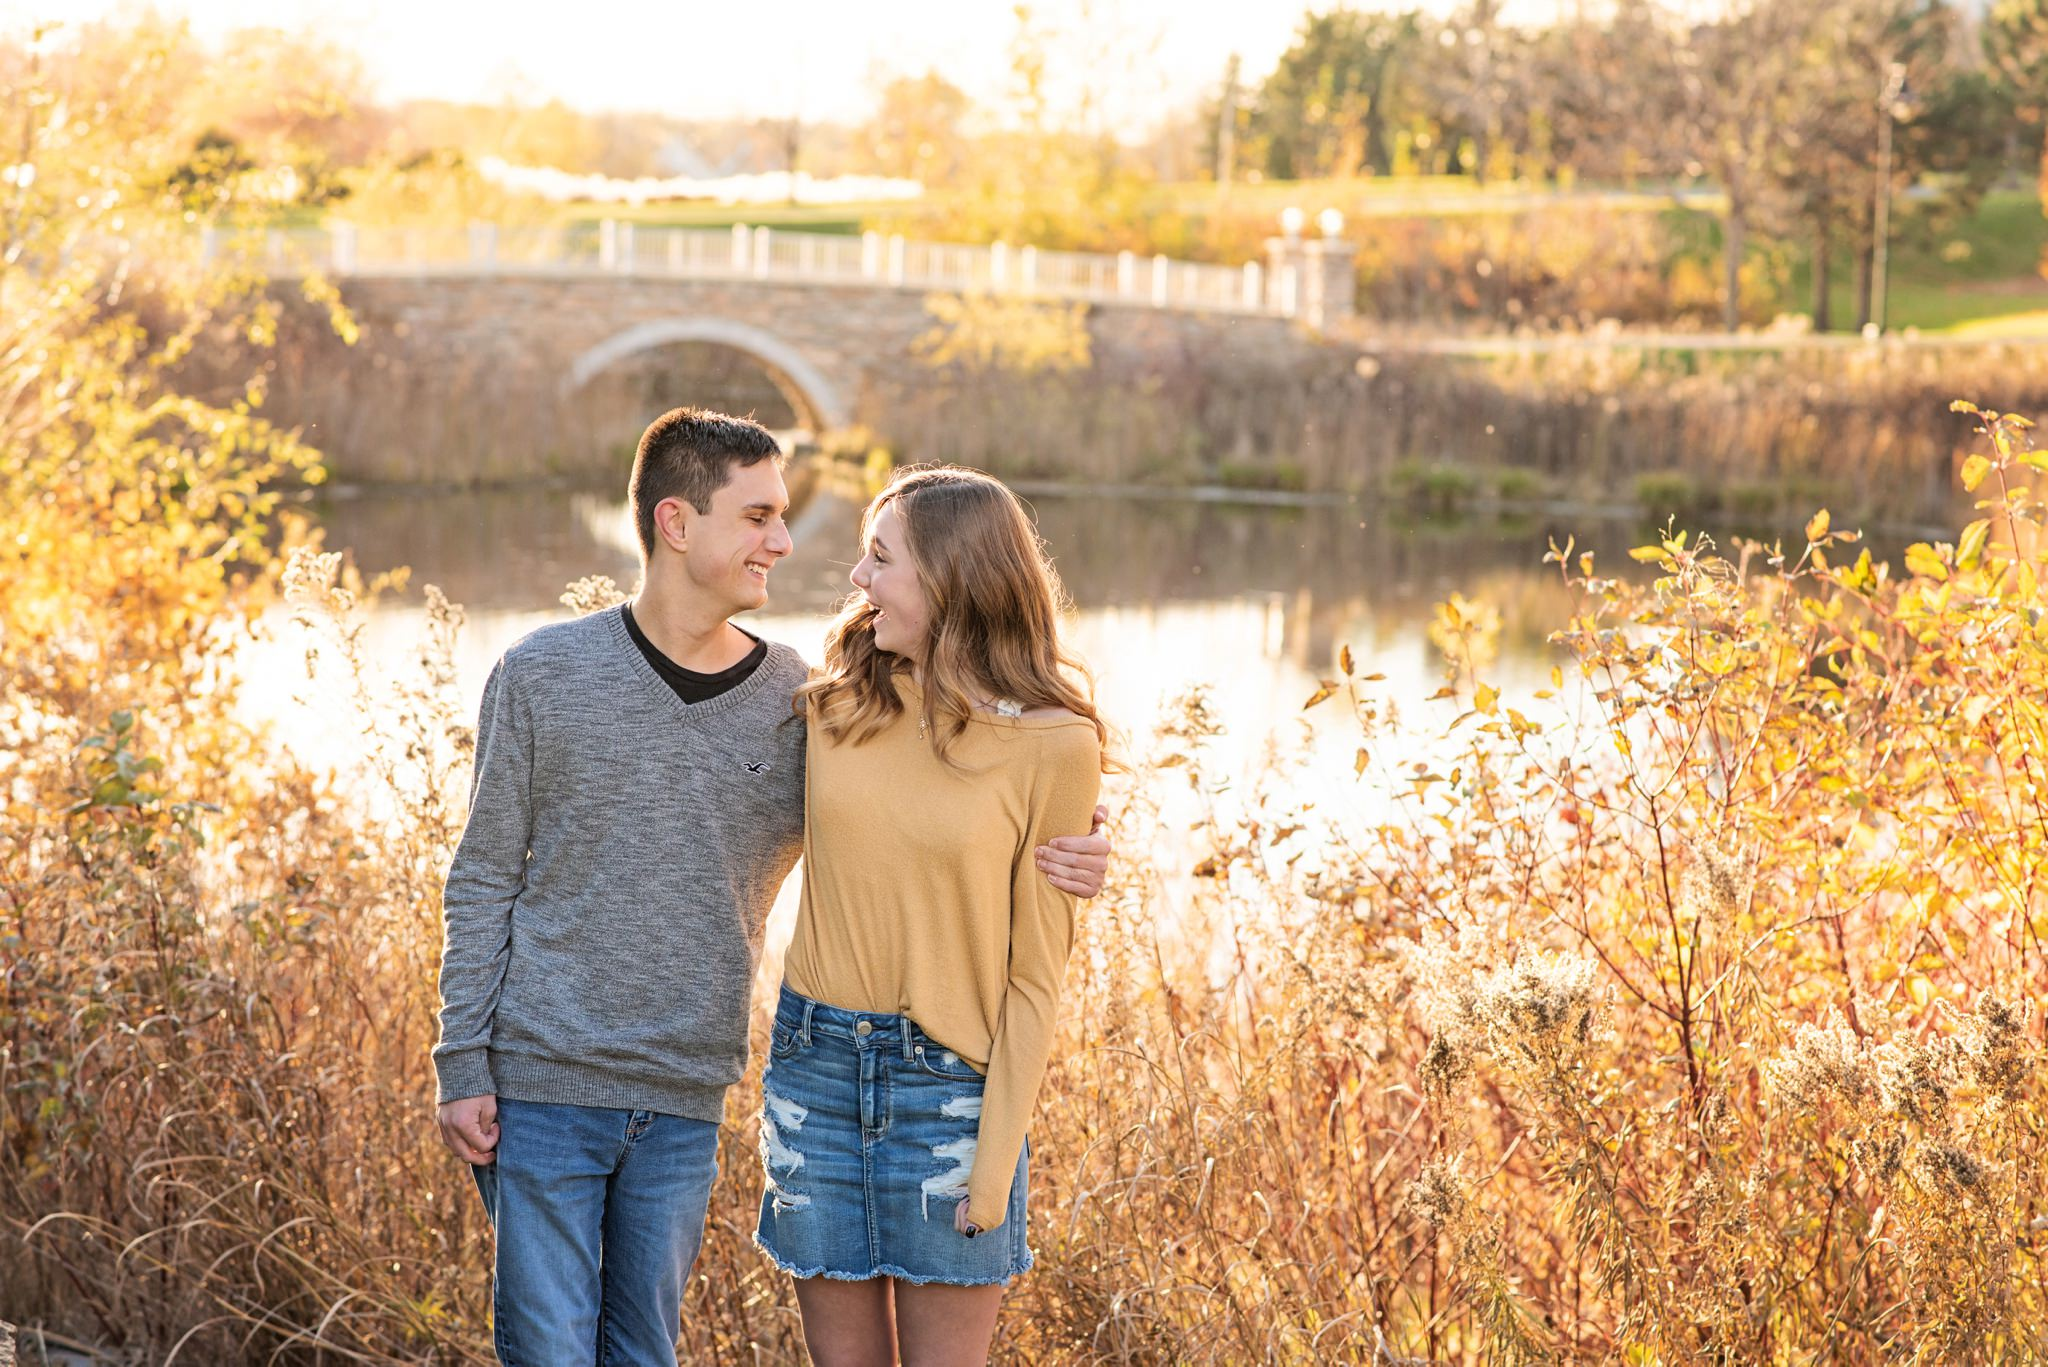 Wittwer-Family-Rotella-Photography-2018-17_WEB.jpg